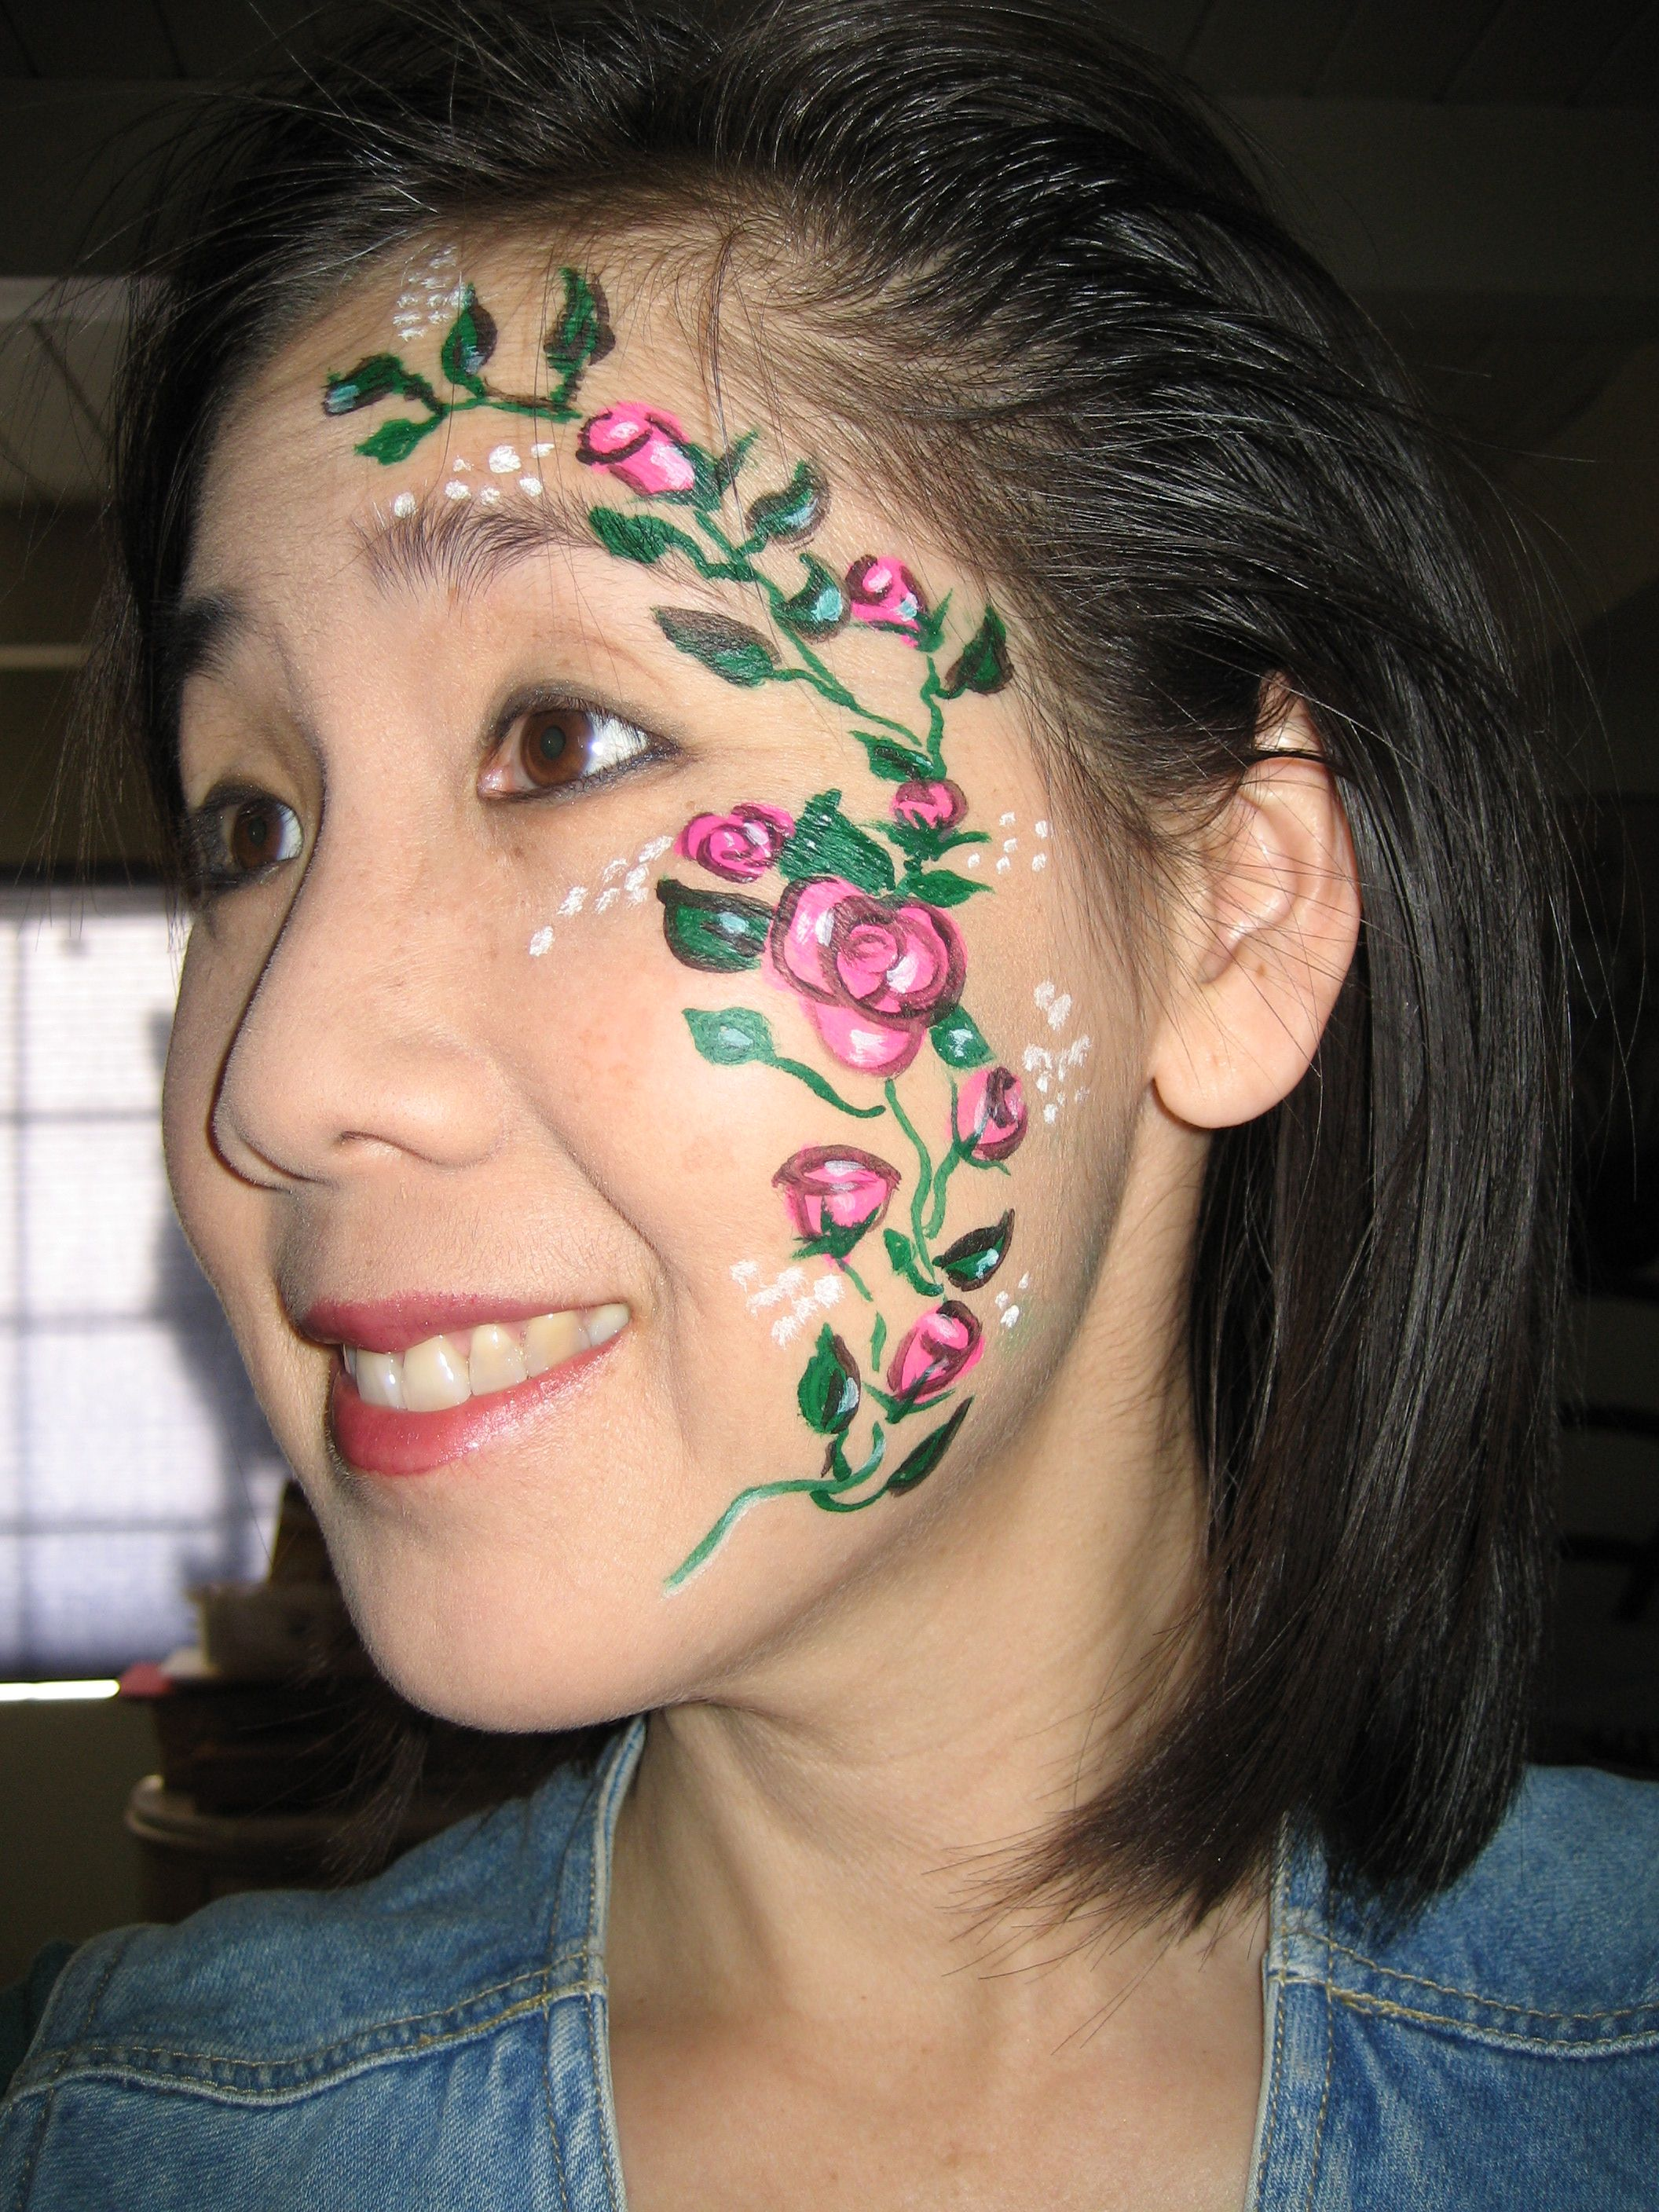 Airbrush tattoos face painting t shirts etc the for Airbrush tattoo paint